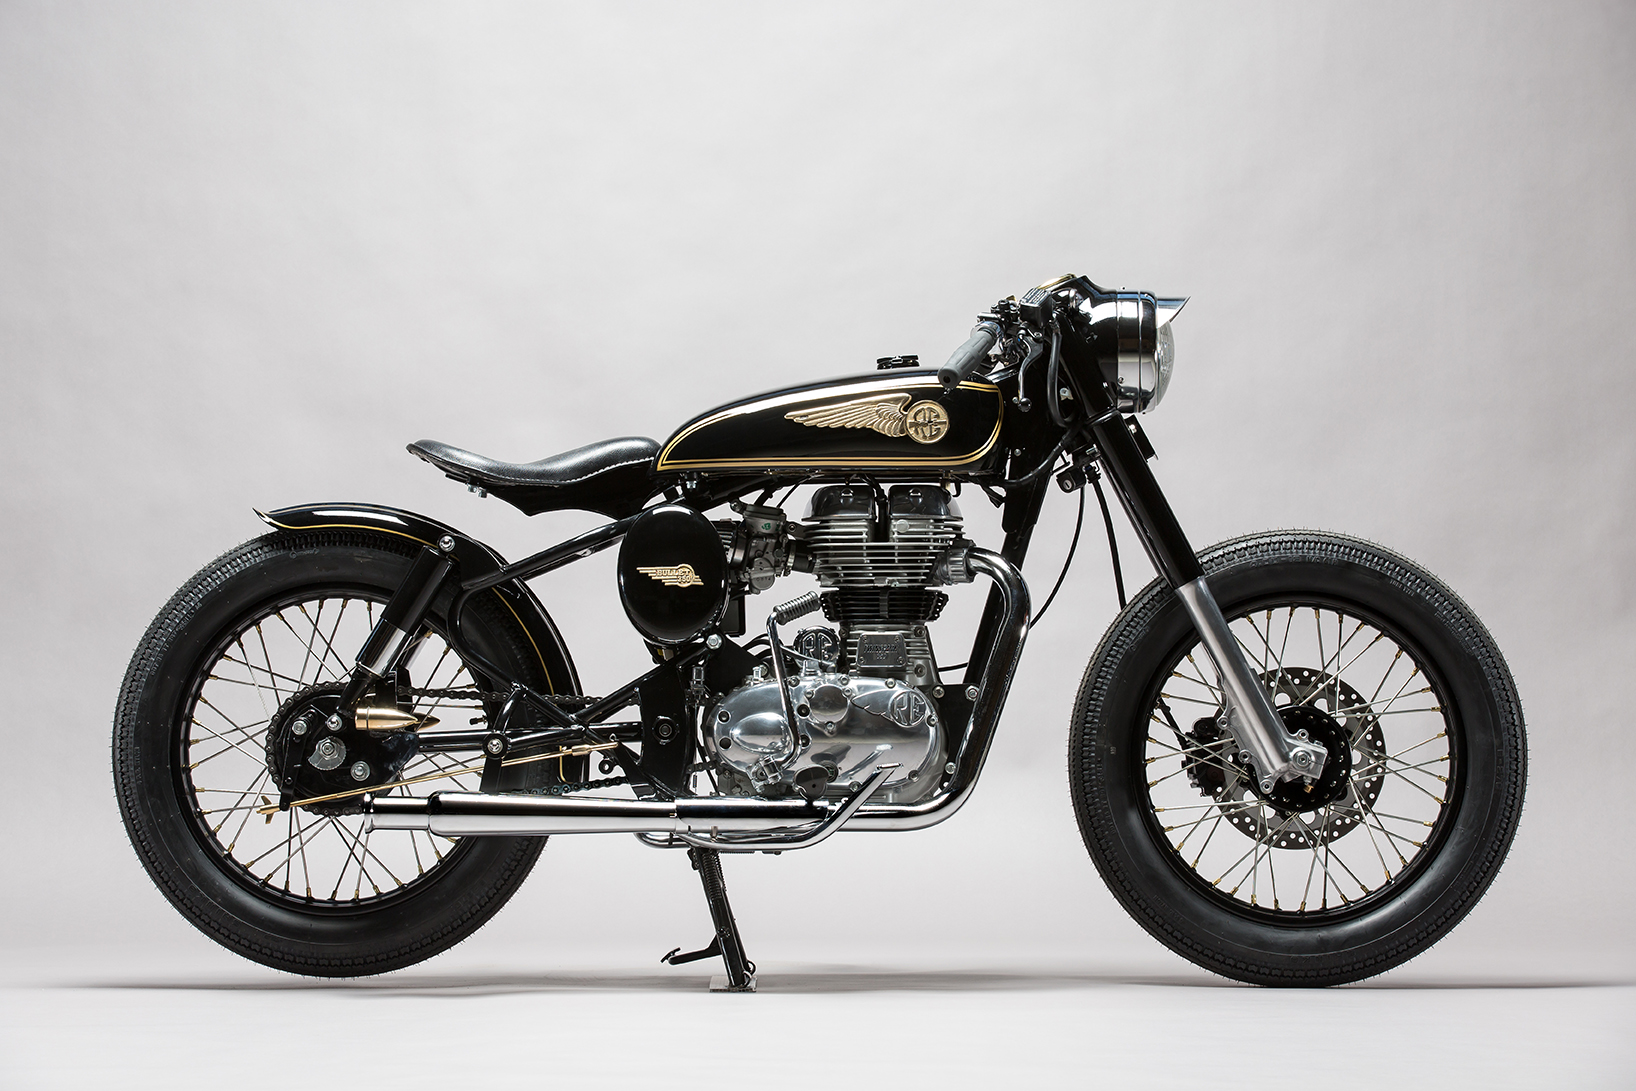 Custom Royal Enfield motorcycles - built as bobbers or cafe racers